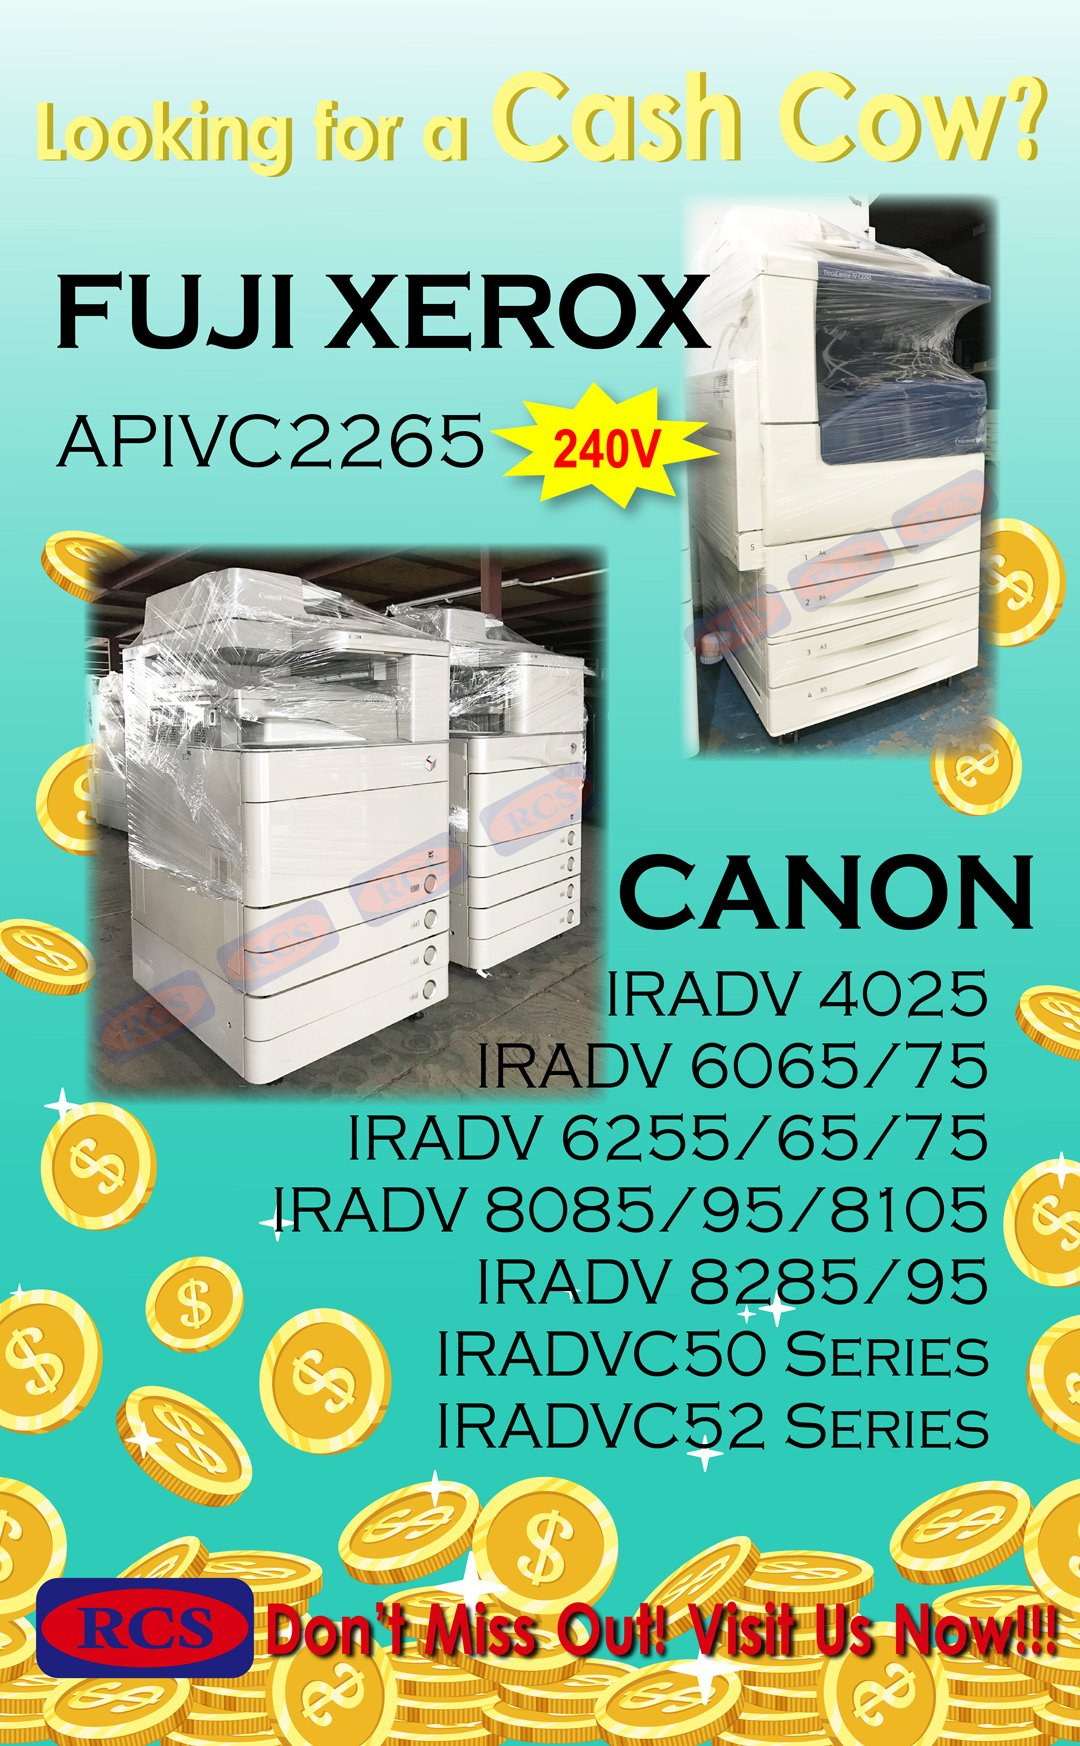 CASH COWS OF YOUR BUSINESS!! CANON/FUJI XEROX/RICOH/MINOLTA RECONDITIONED COPIER WHOLESALE